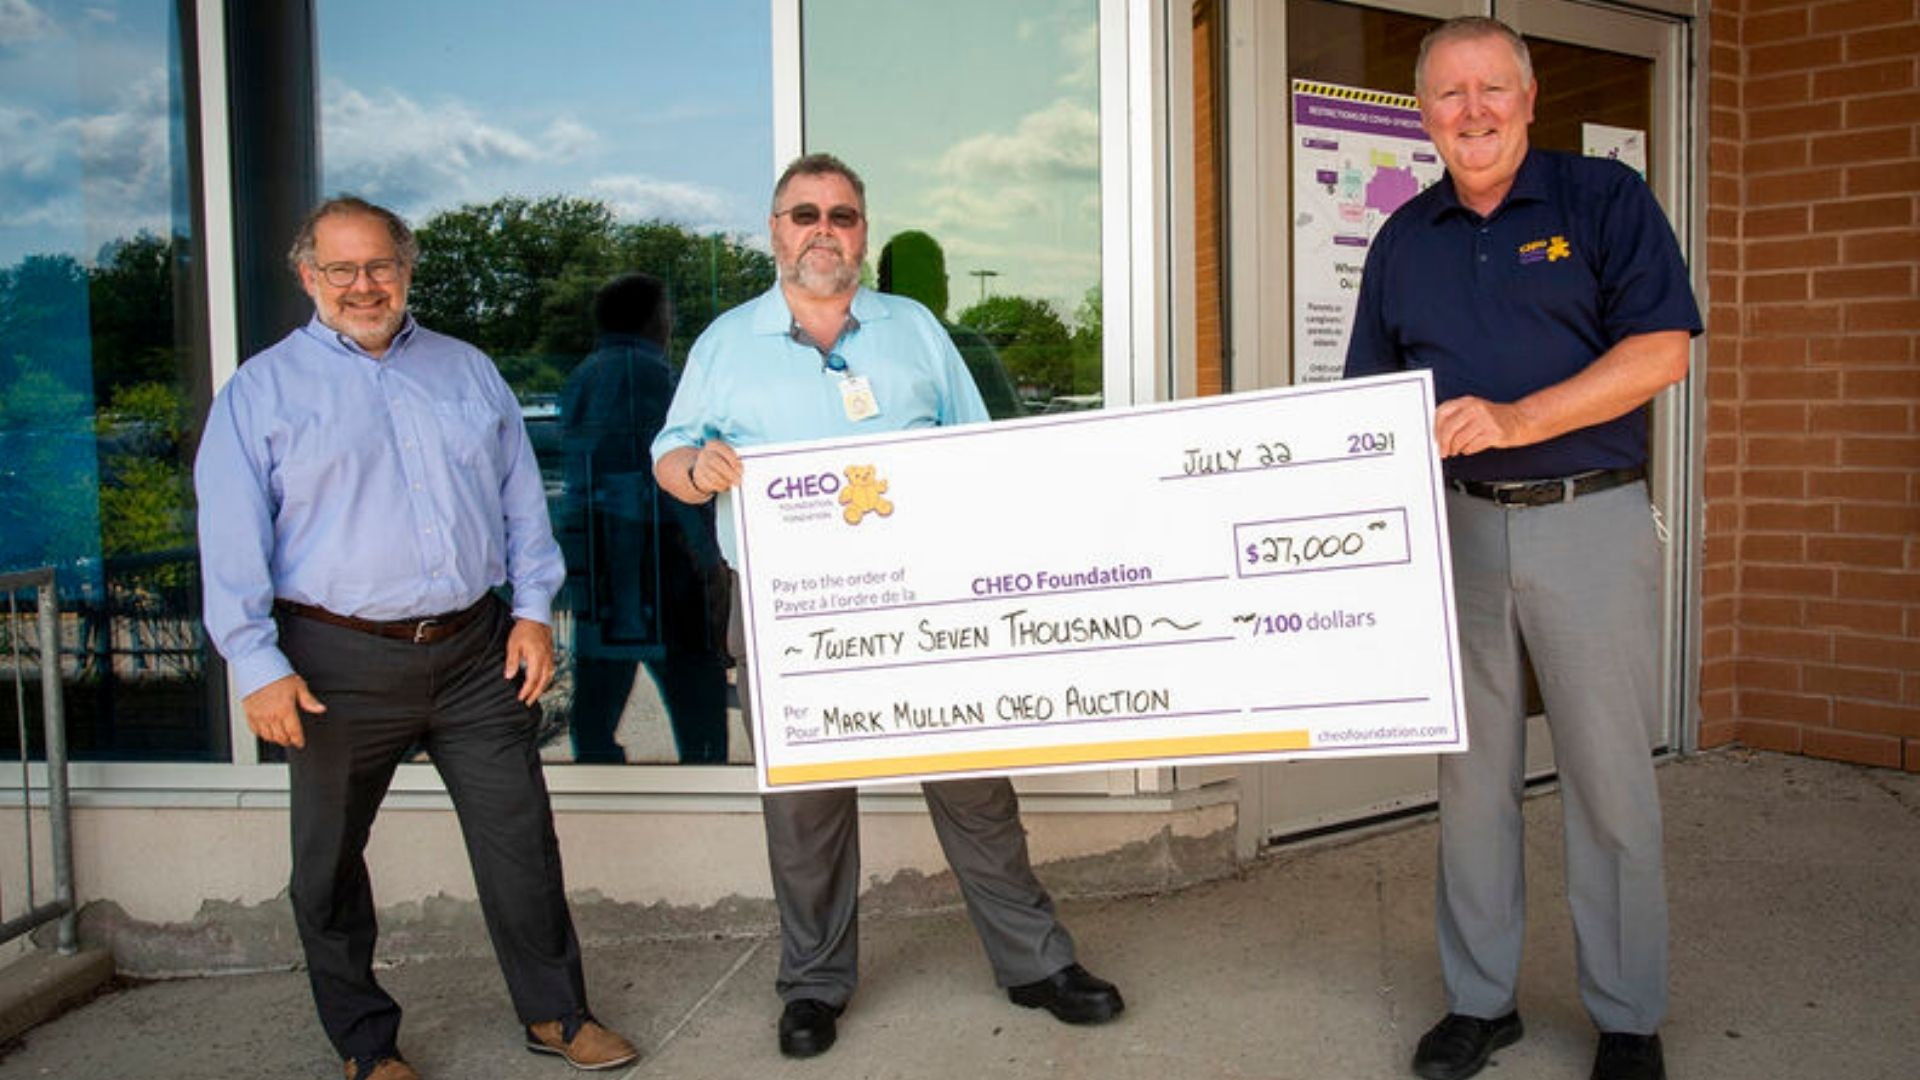 Mark mullen presenting cheque to CHEO foundation